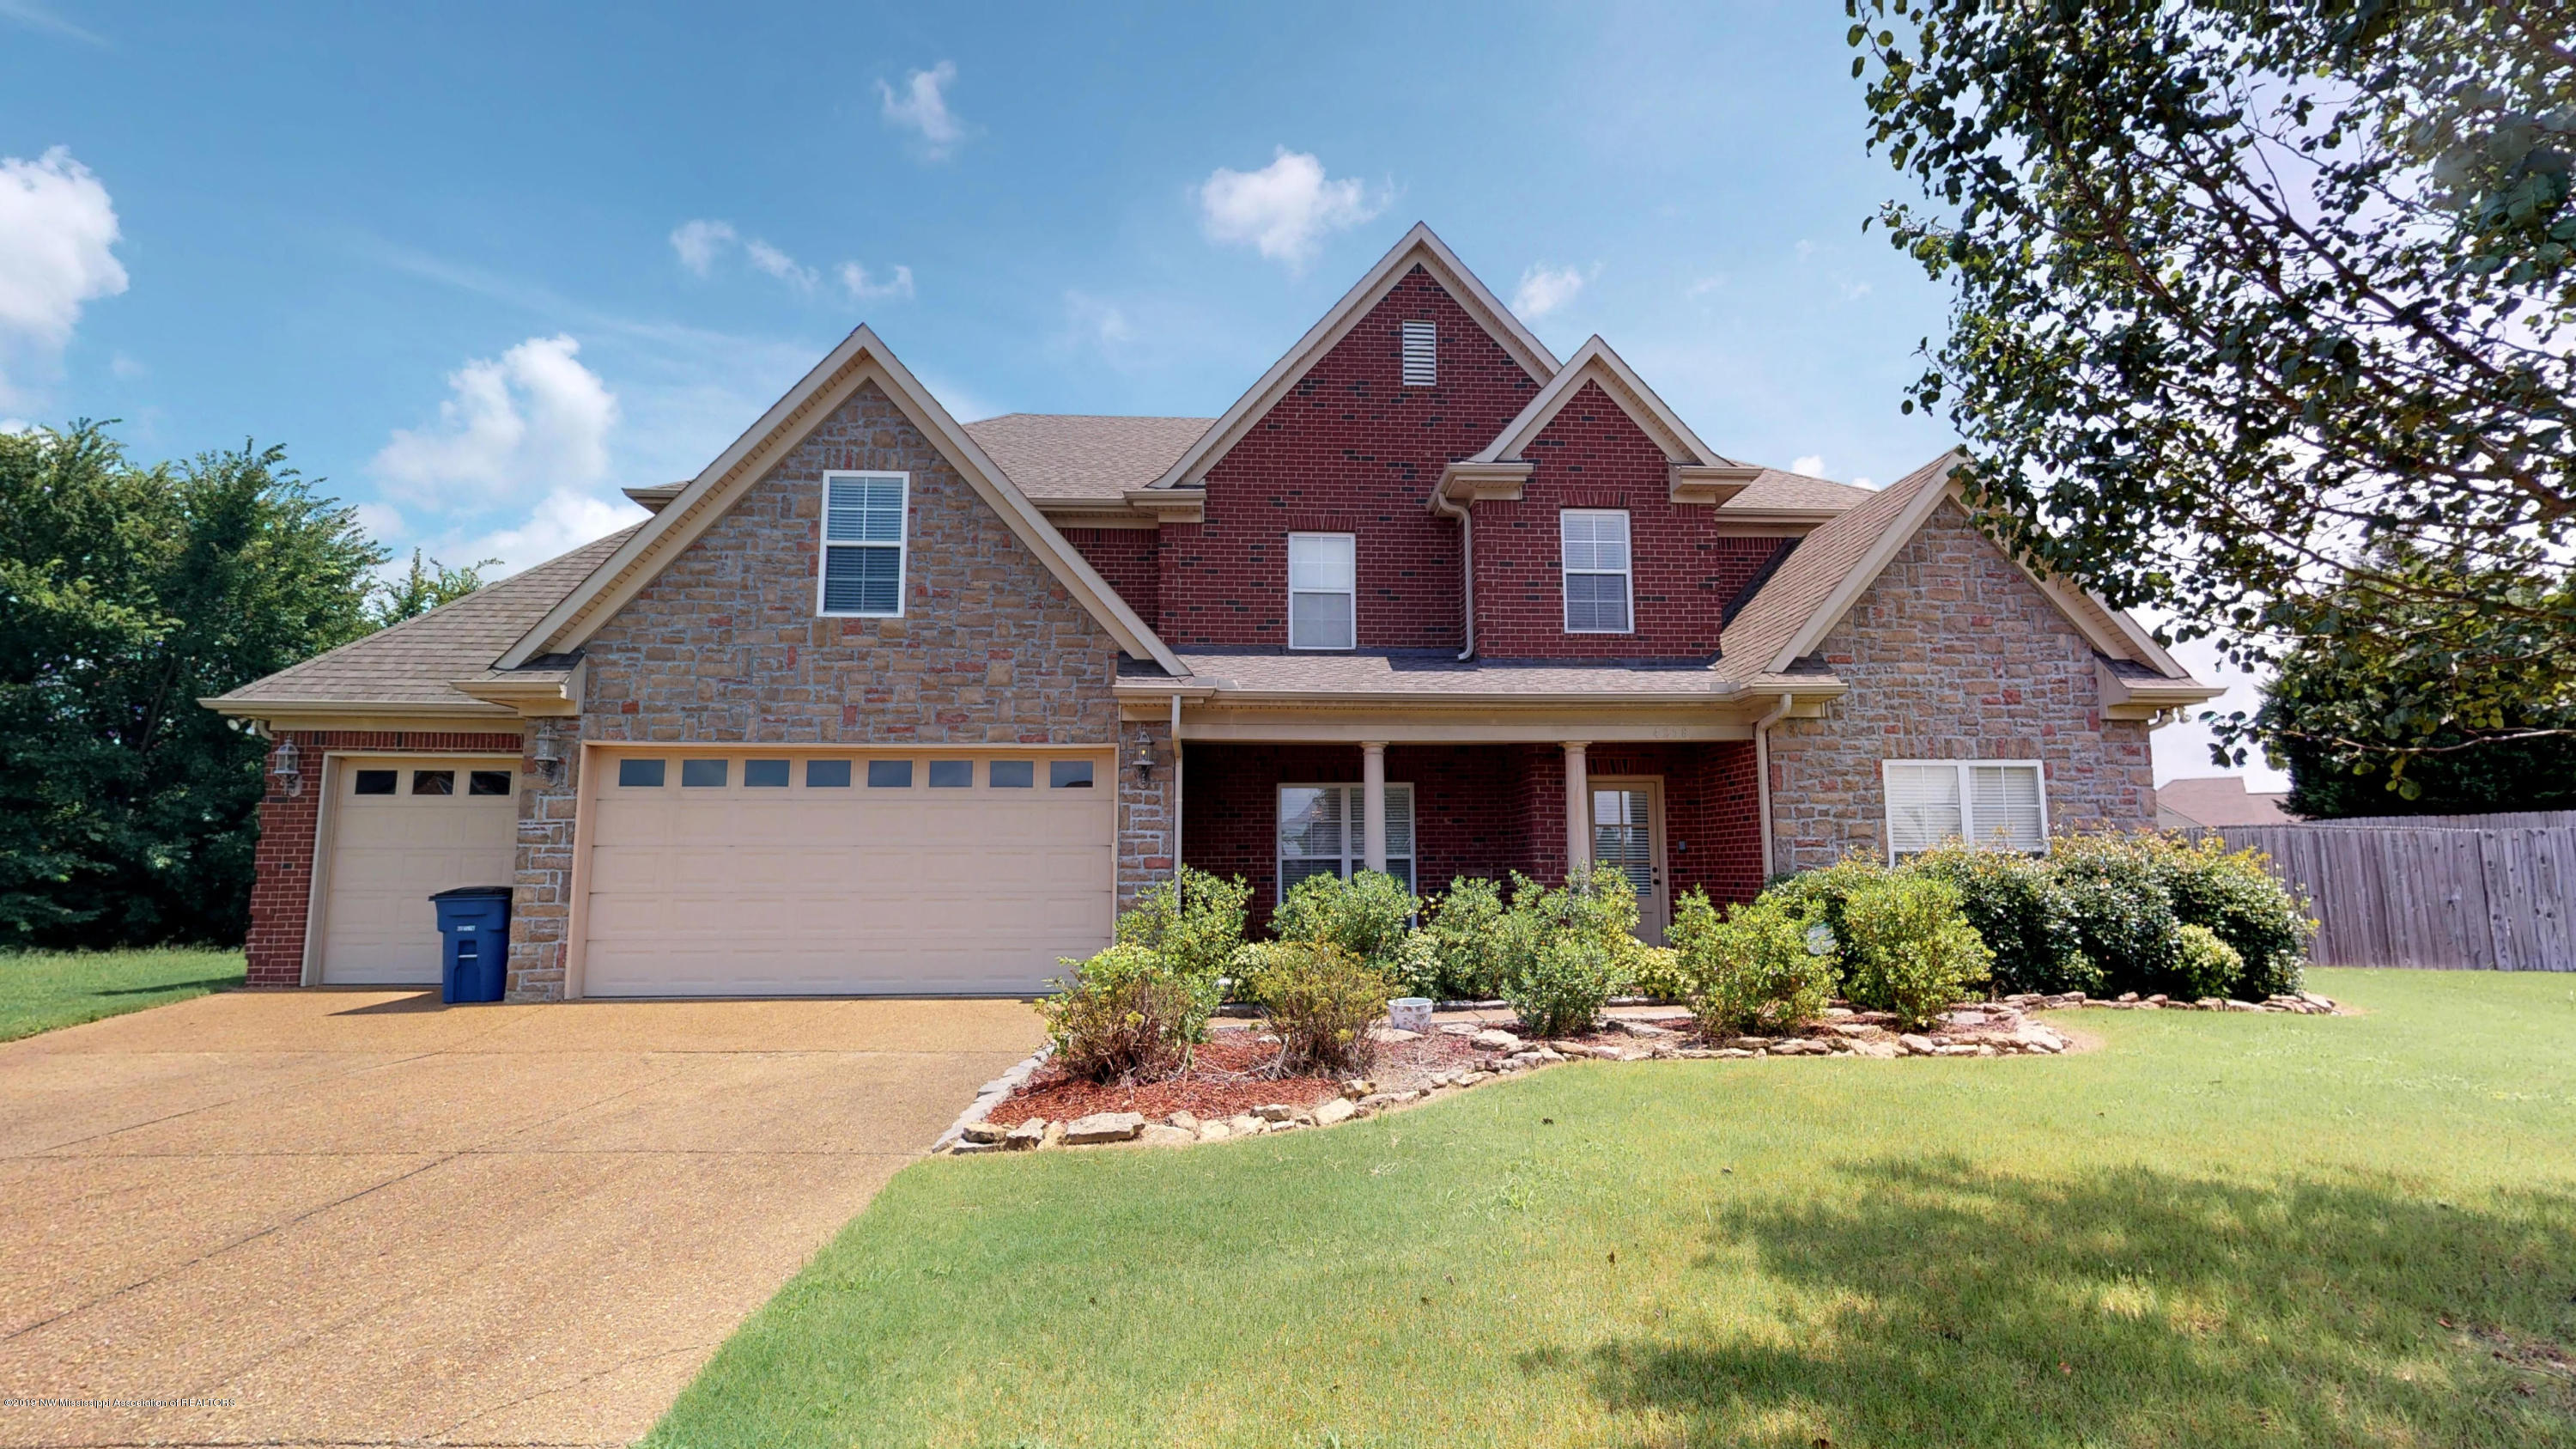 4258 Amherst Cove, Olive Branch, Mississippi